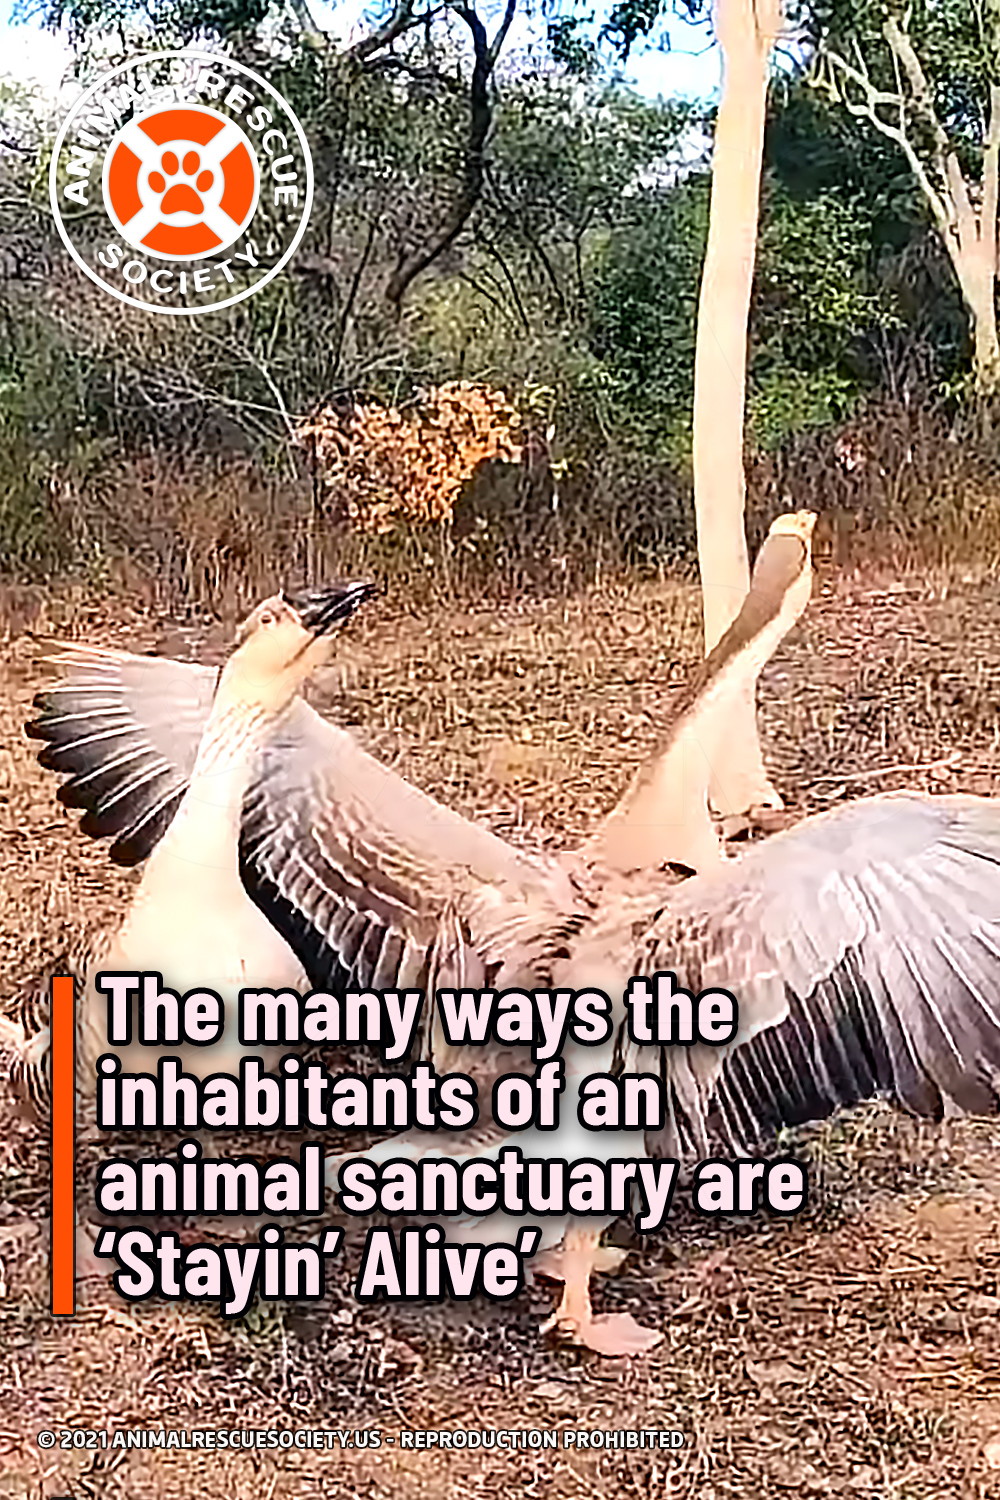 The many ways the inhabitants of an animal sanctuary are 'Stayin' Alive'